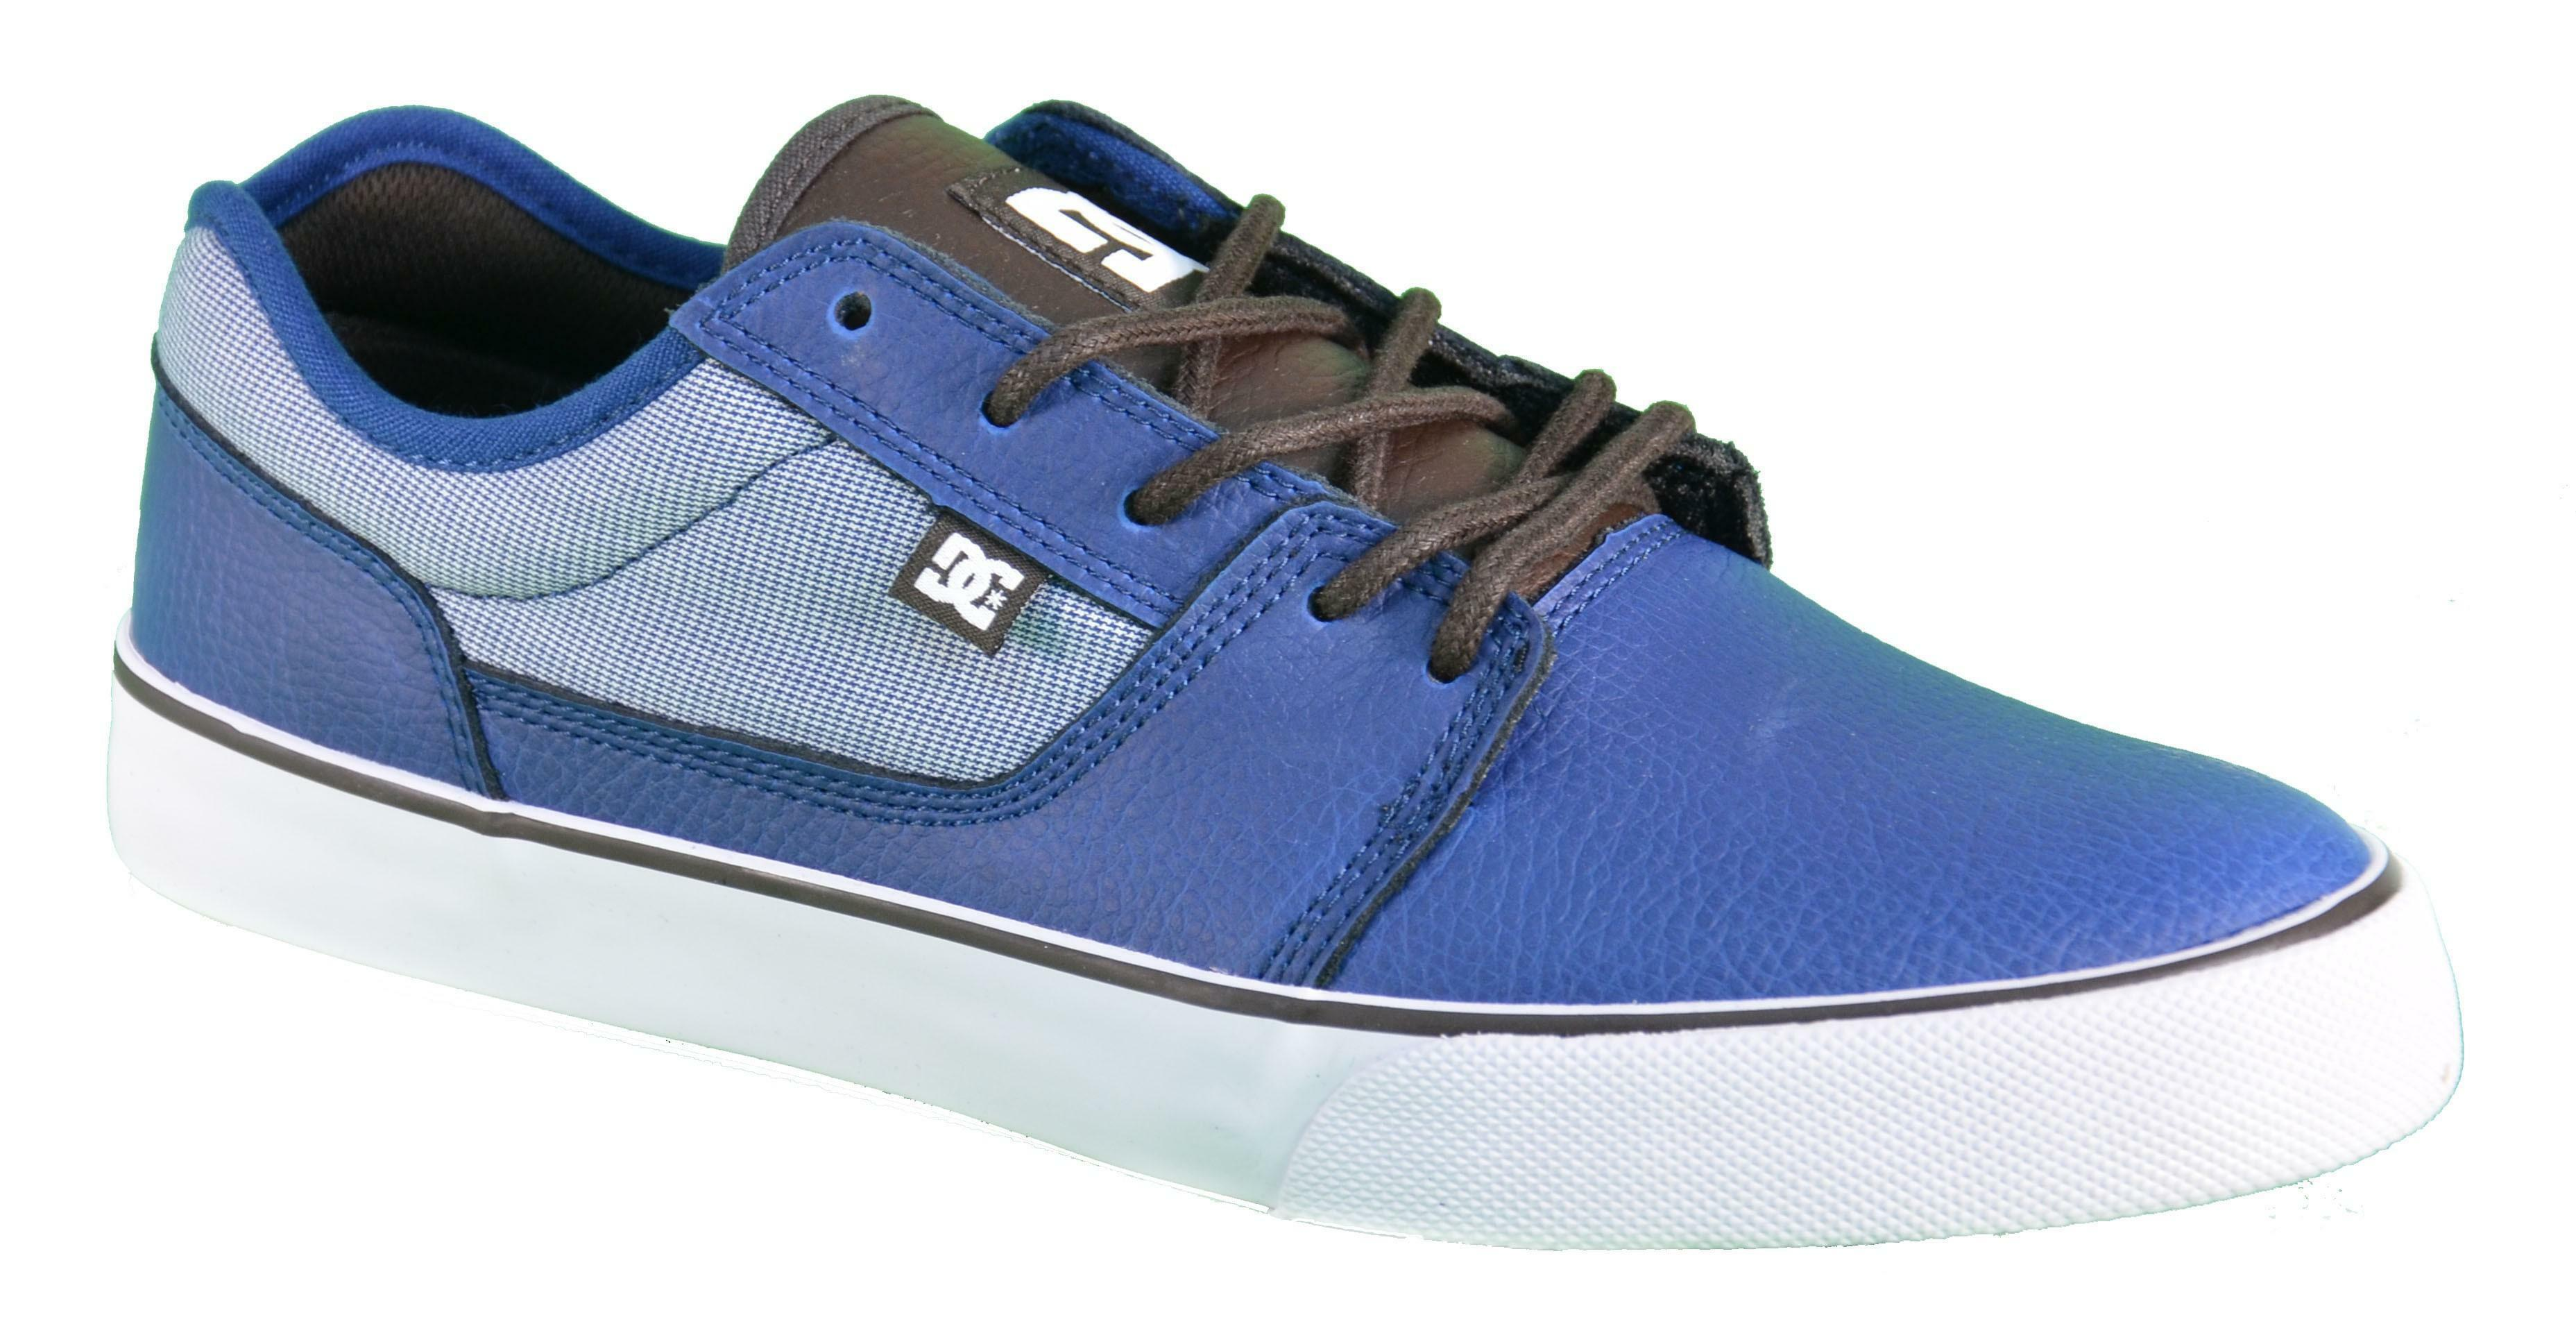 dc shoes tonik xe scarpe blu pelle 300022